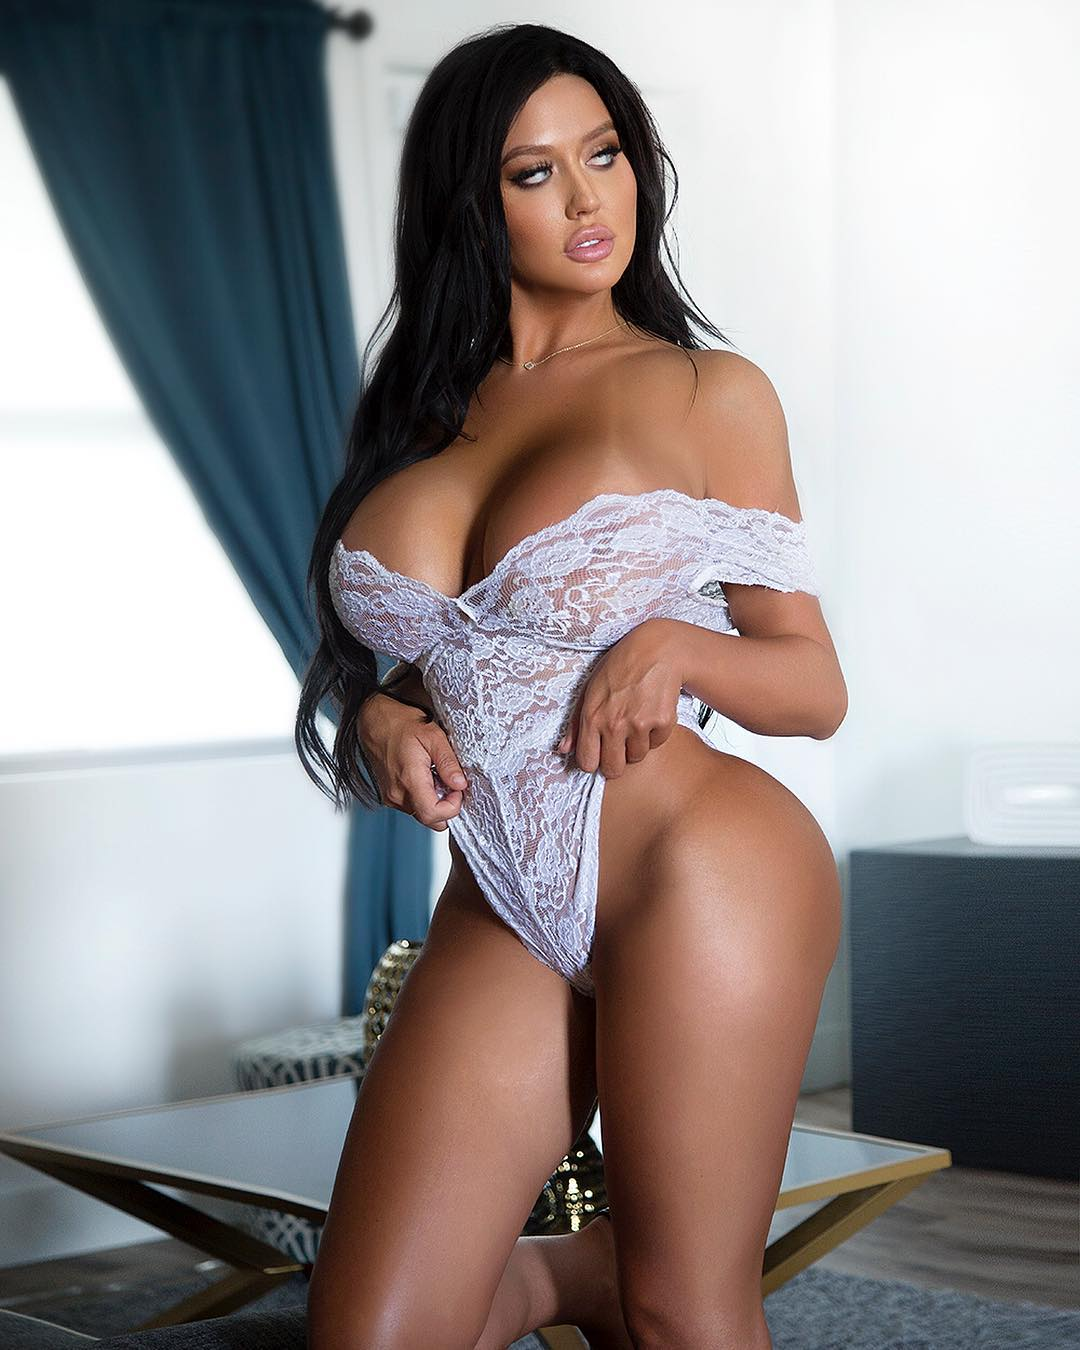 Becky Hudson Hot Pics | Picture Perfect